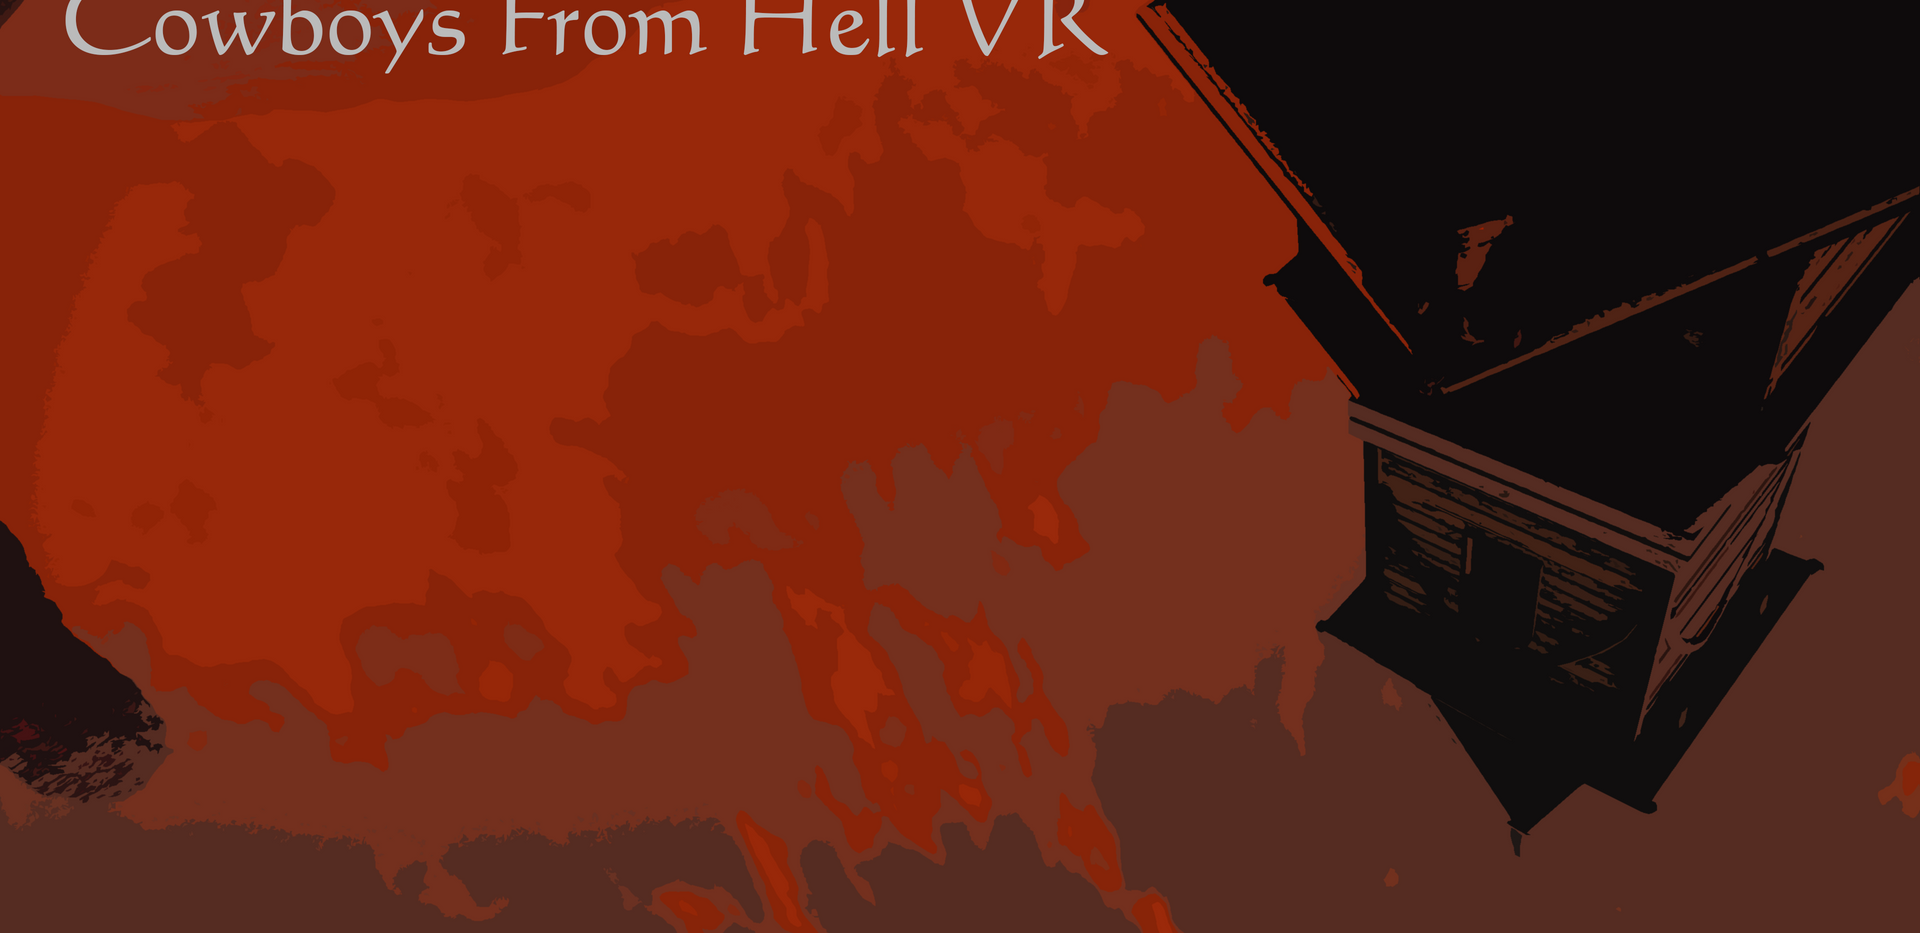 Cowboys From Hell VR